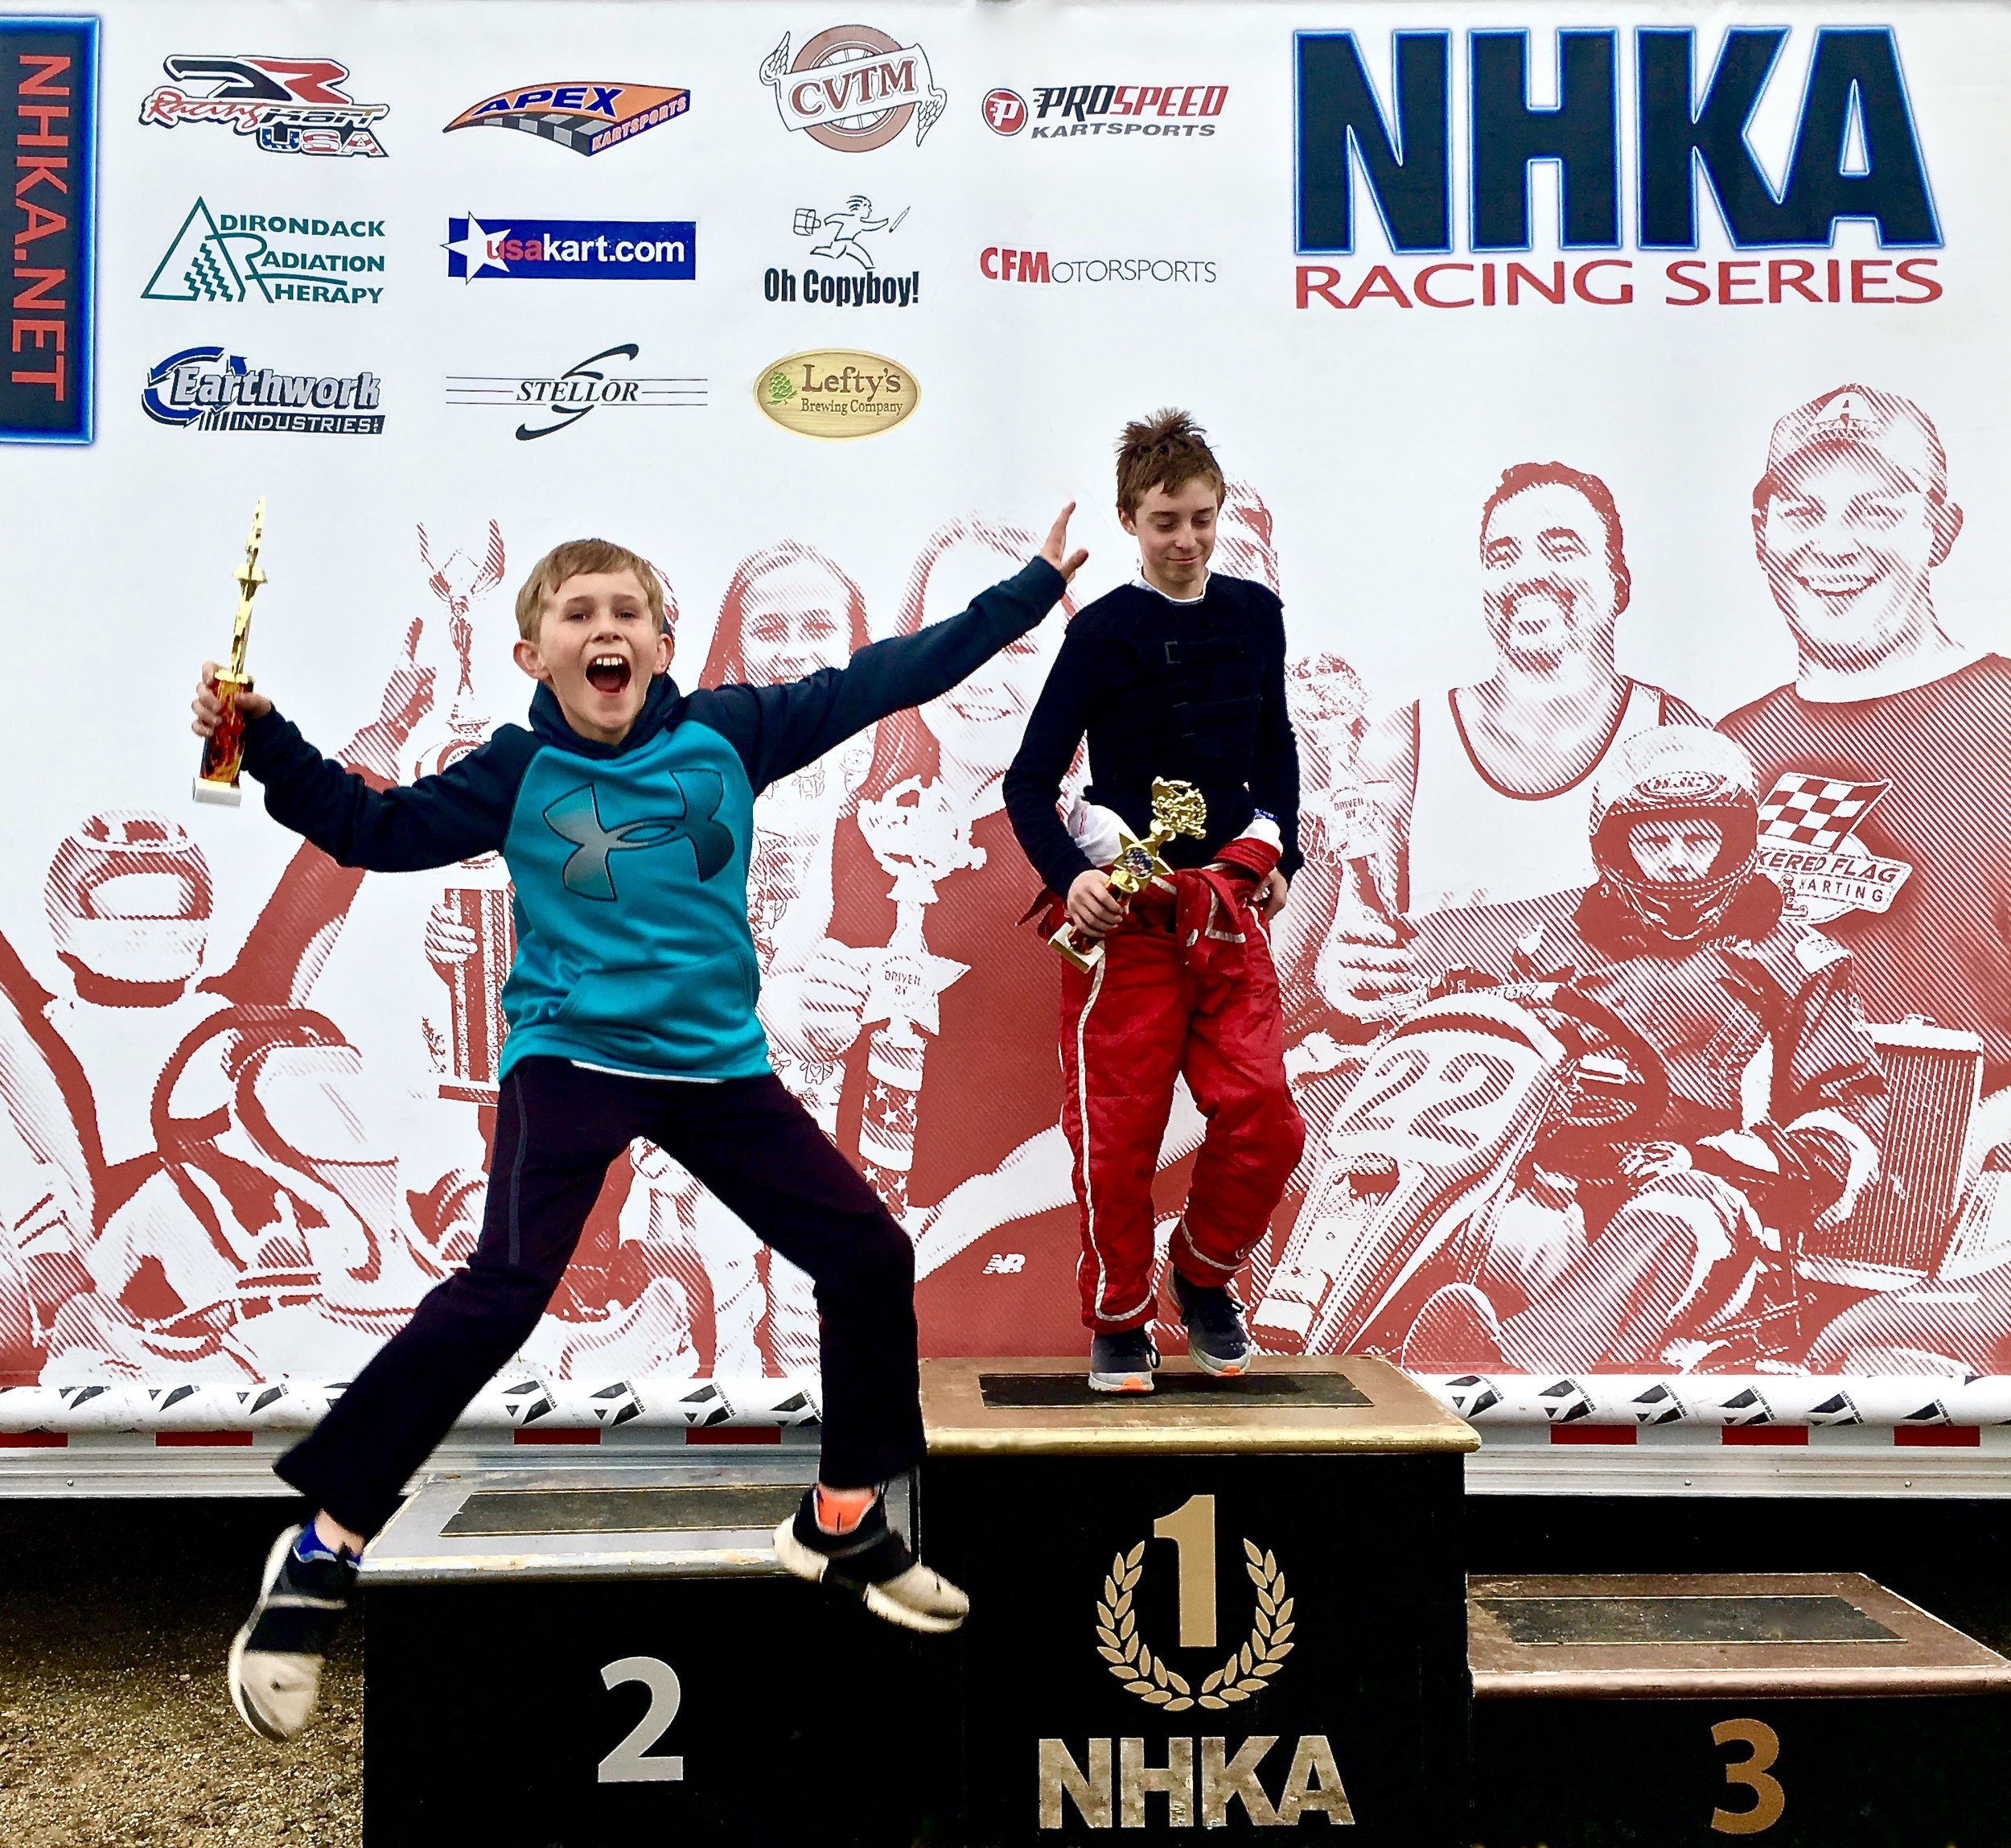 NHKA Racing Series - My work for the NHKA Racing Series shows the full breadth of my skill set and how I use it to get living, breathing, jumping for joy results.Learn more ➝